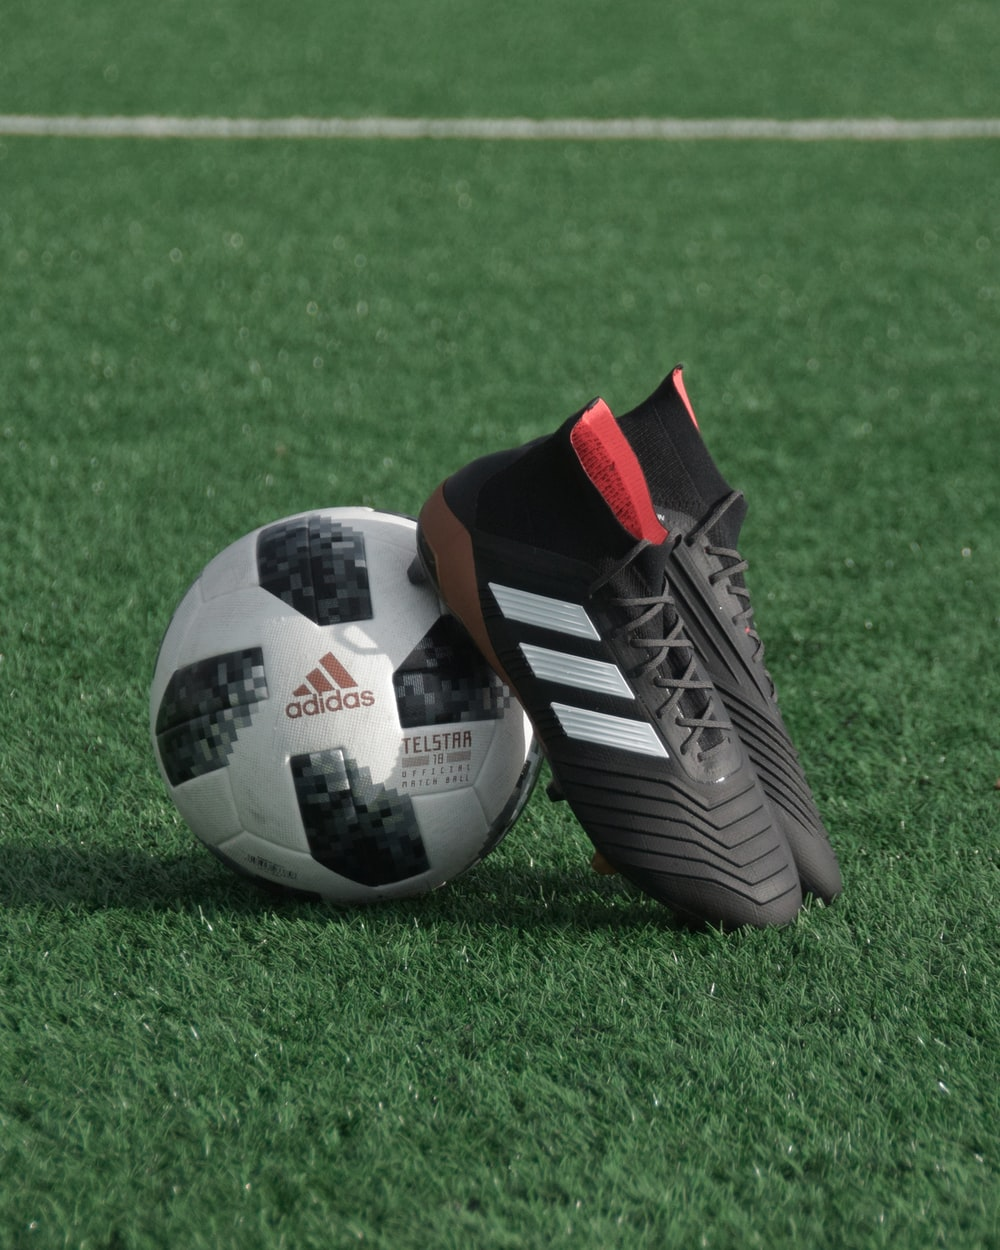 black adidas cleats lean on white and black adidas soccer ball on green grass